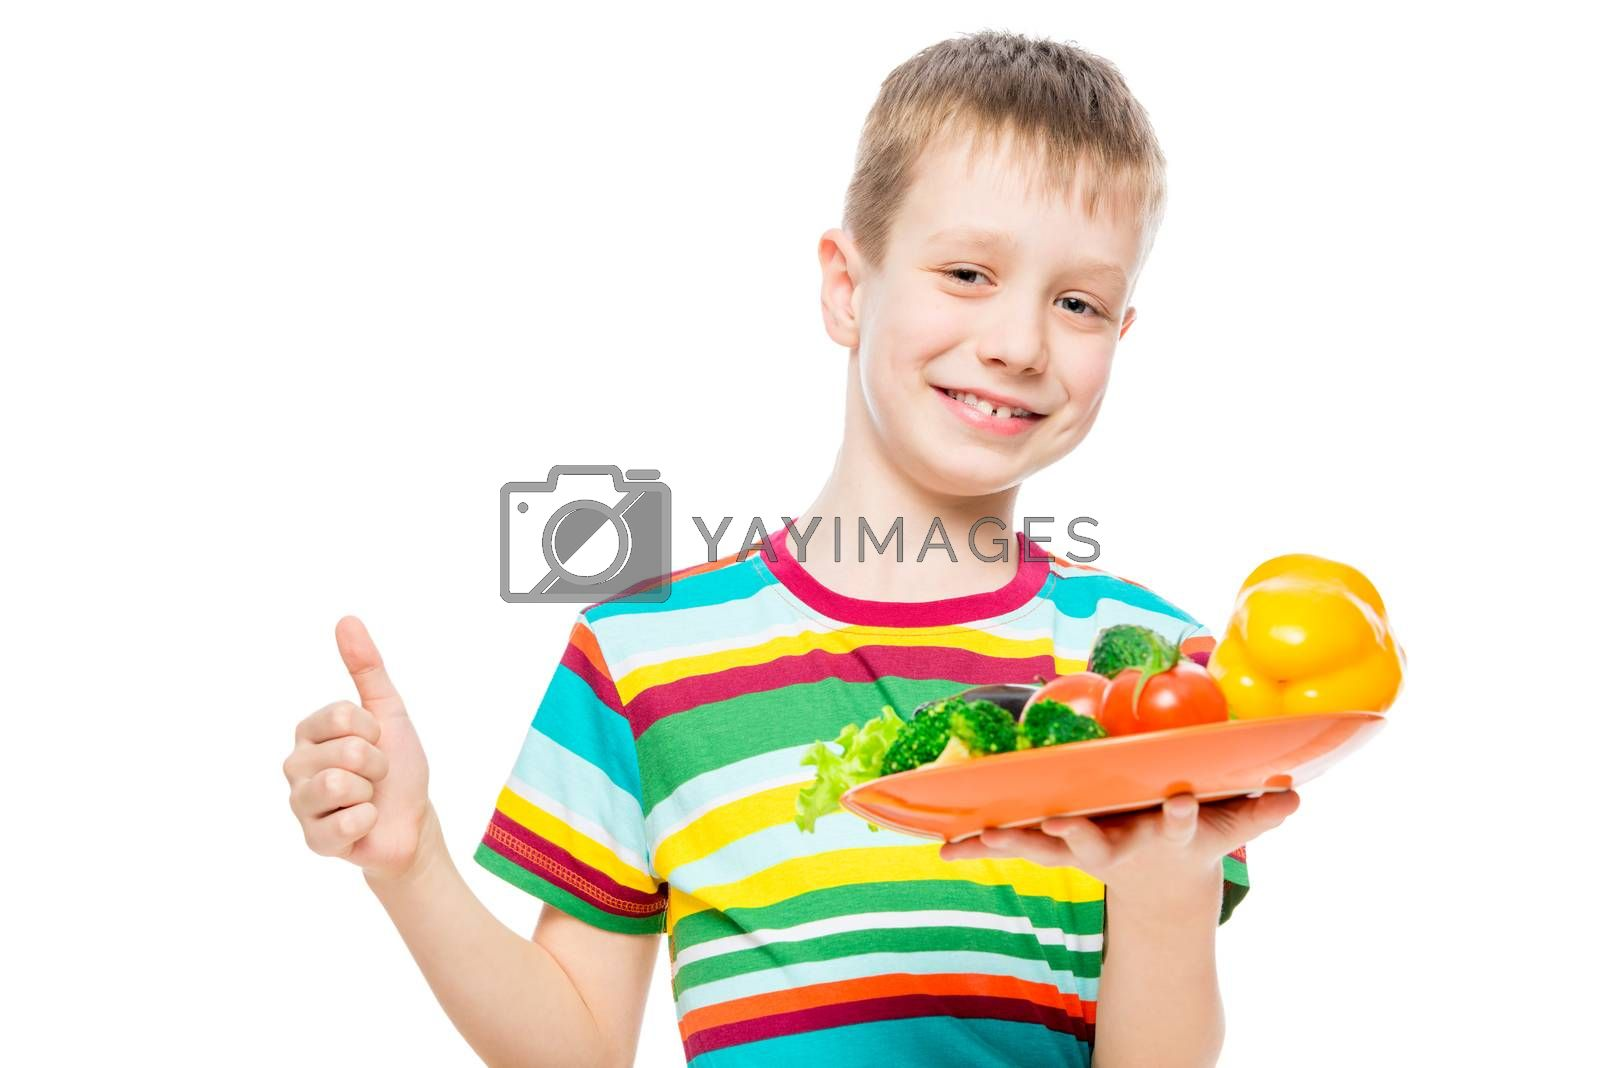 satisfied boy with a plate of healthy vegetables isolated on white background portrait